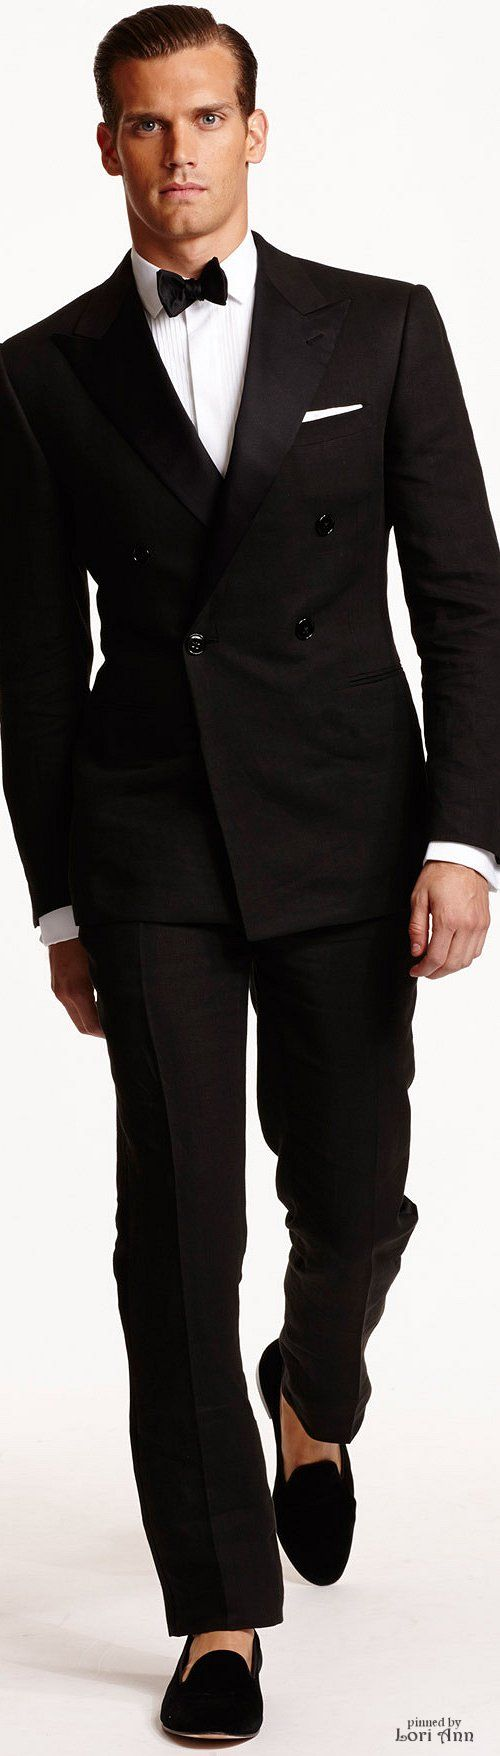 Ralph Lauren Spring 2015 | Menswear | Men's Fashion | Stylish and Sophisticated | Gentleman Style | Moda Masculina | Shop at designerclothingfans.com